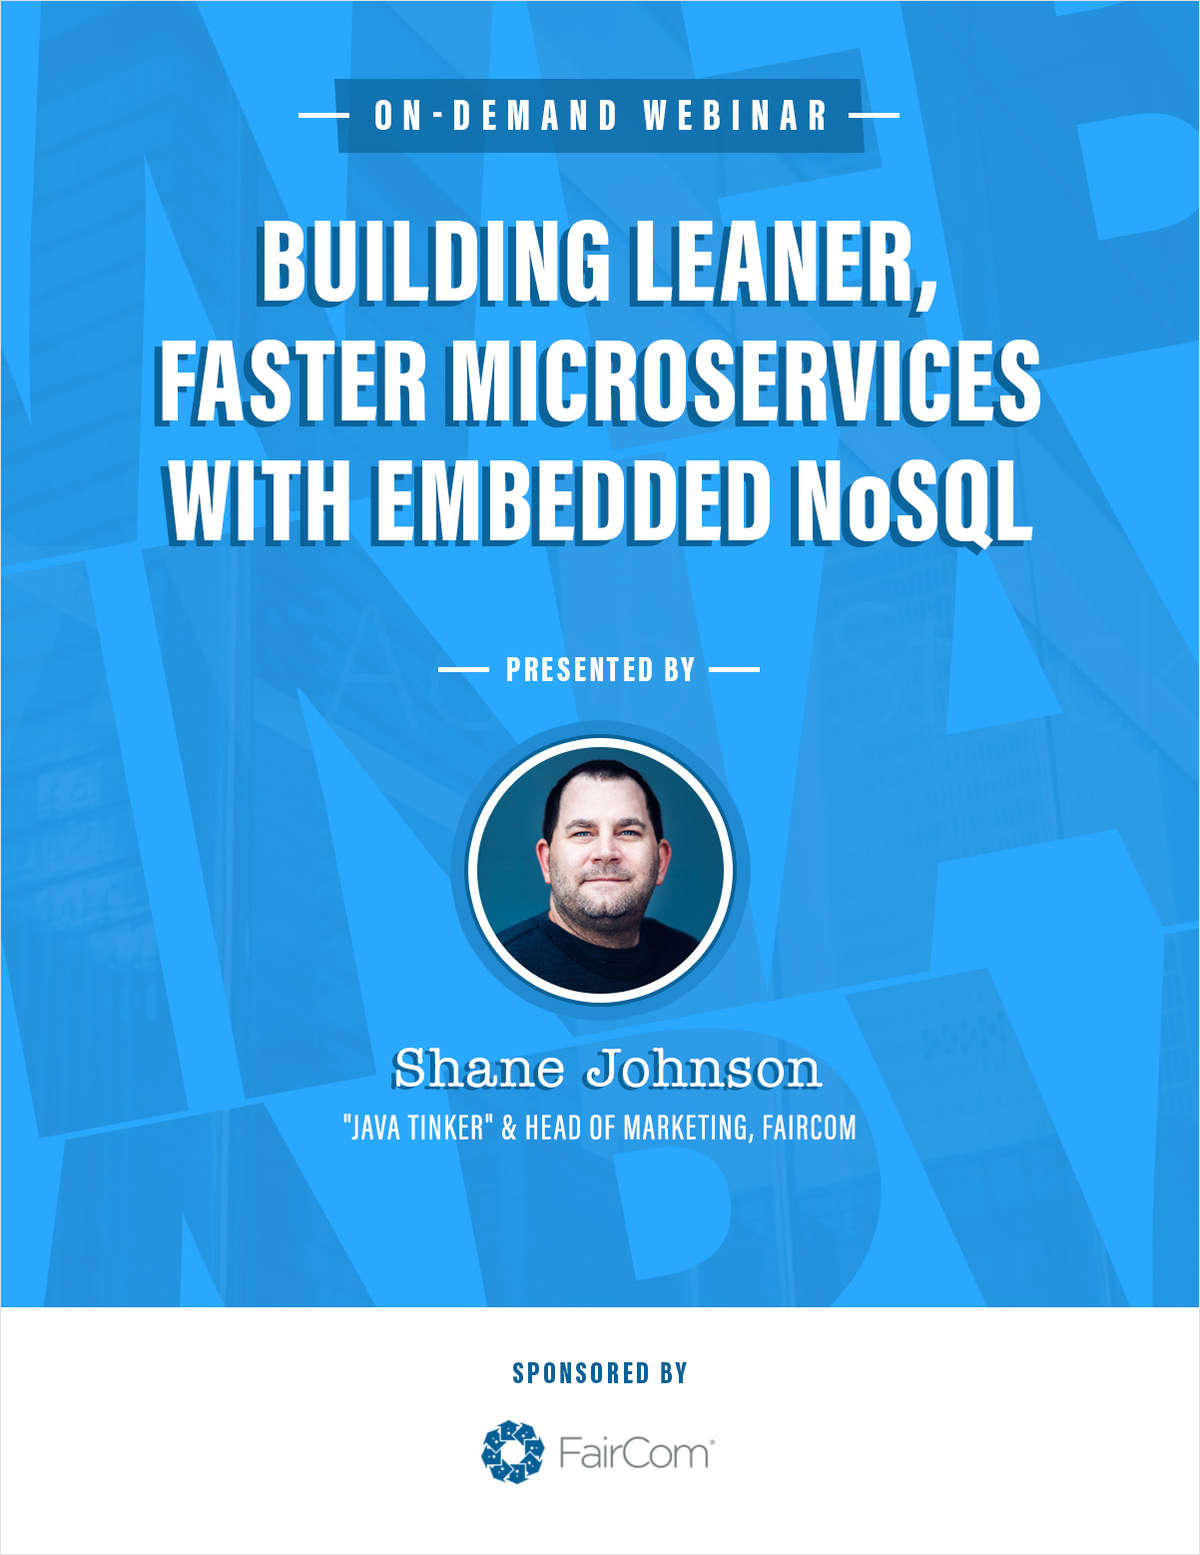 Building leaner, faster microservices with embedded NoSQL